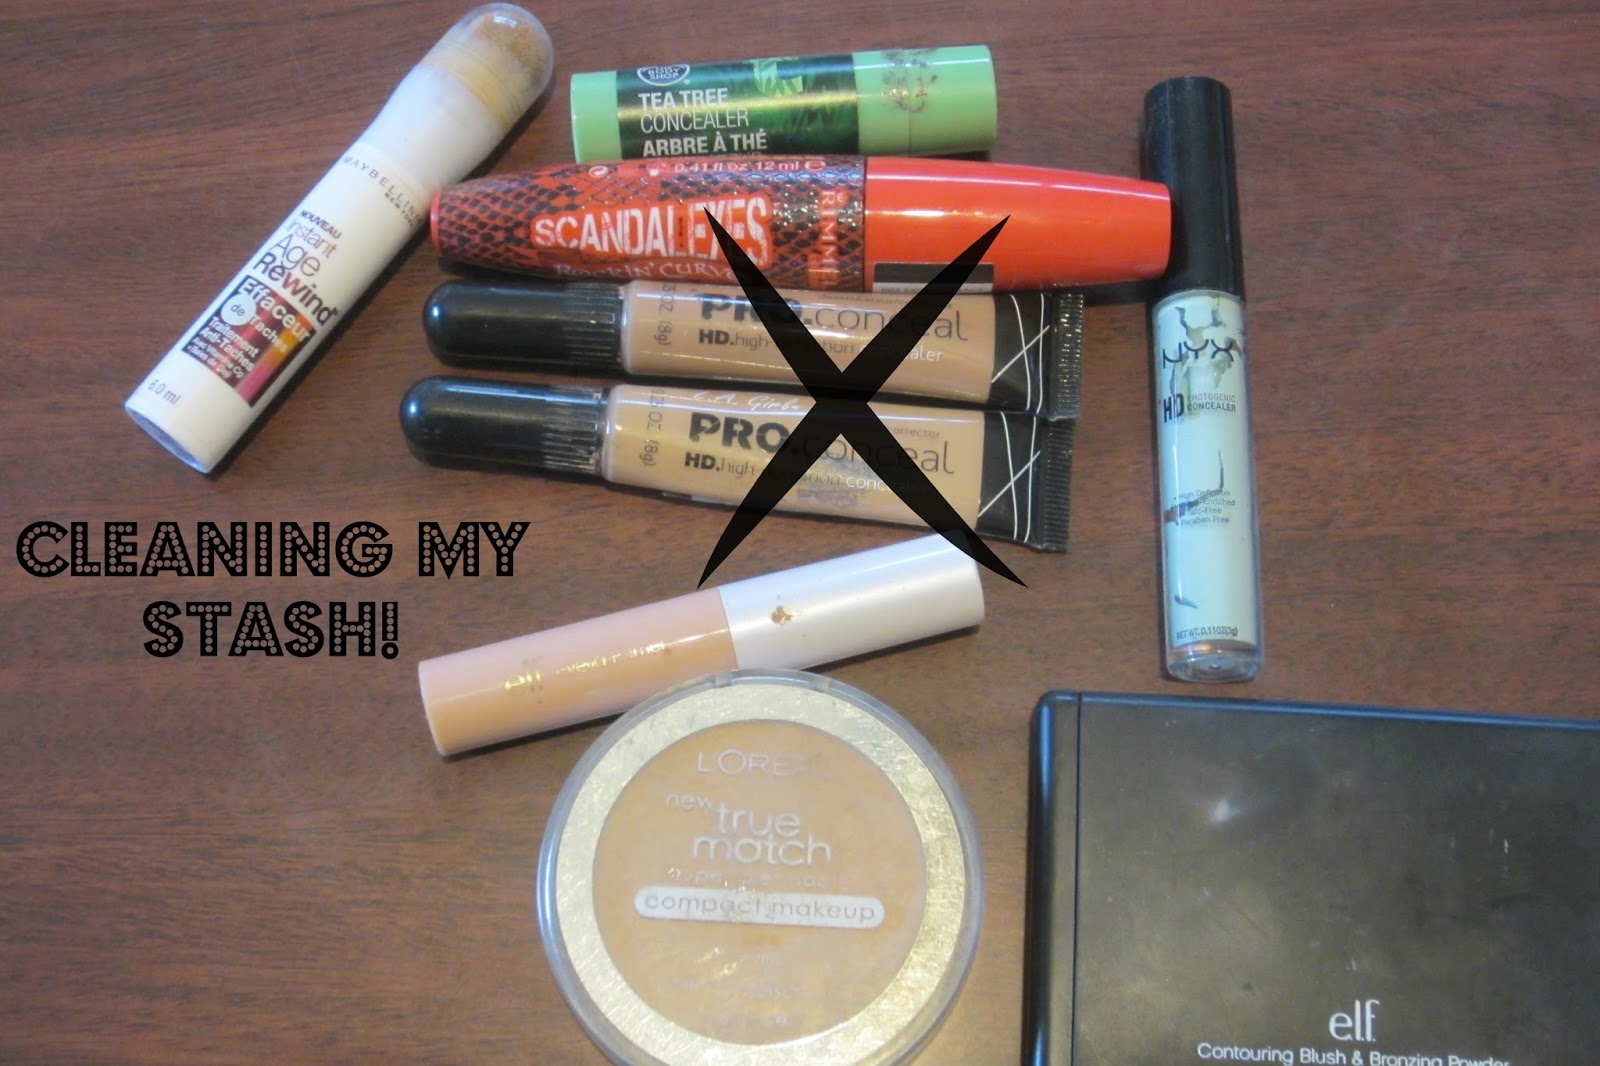 l.a girl pro concealer, maybelline instant age rewind concealer, the body shop tea tree concealer, rimmel mascara